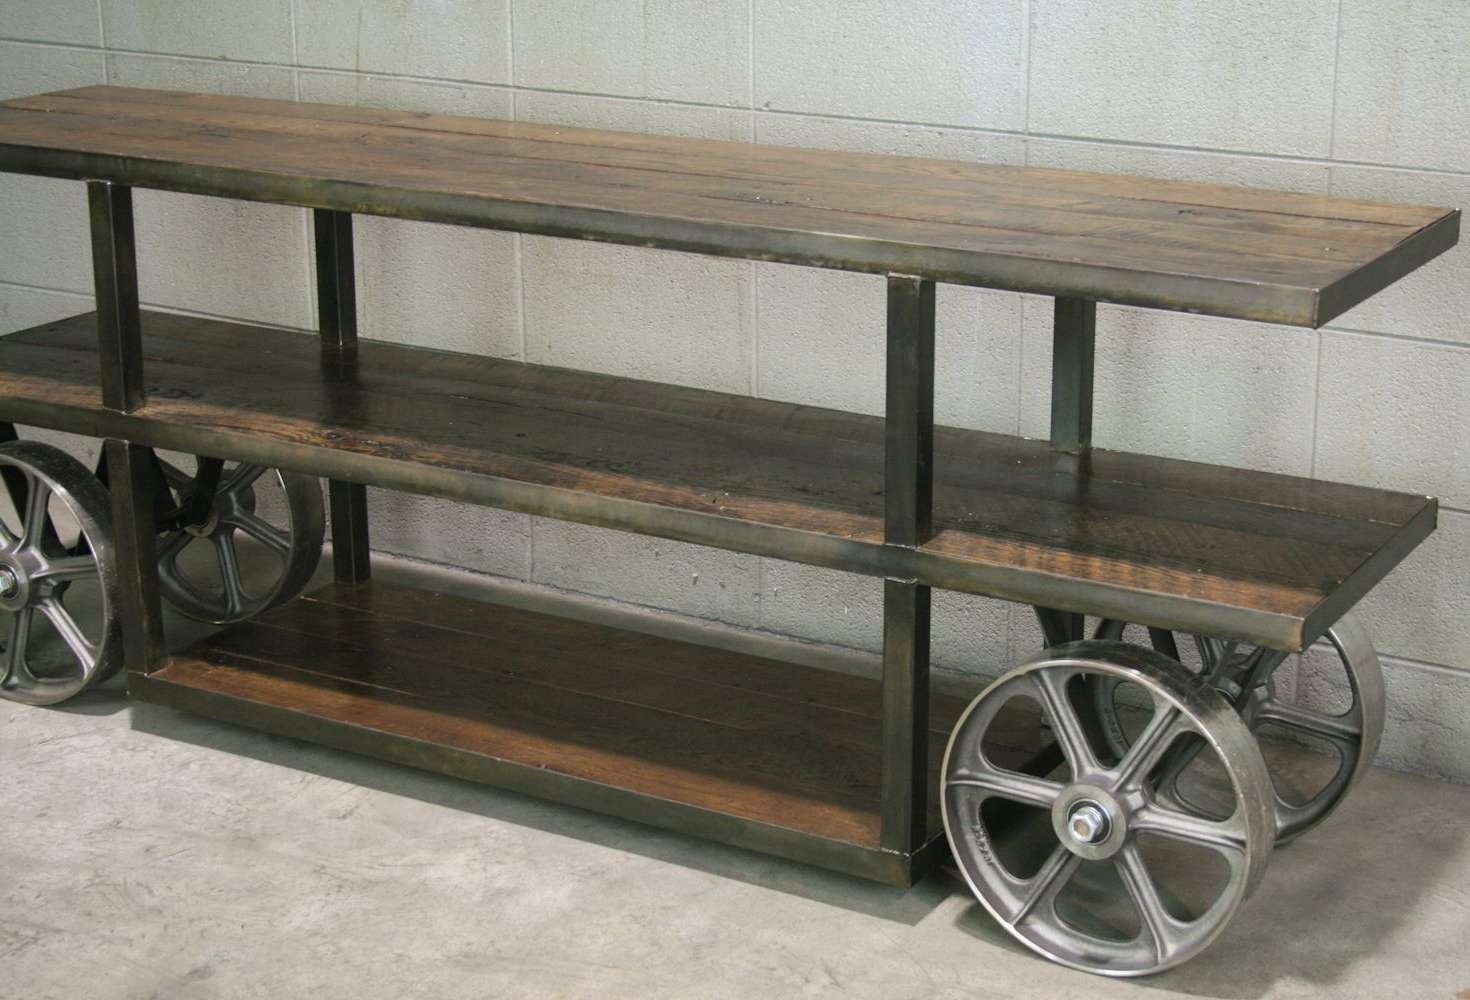 Buy A Hand Crafted Industrial Trolley Cart/ Media Console Regarding Industrial Tv Stands (View 12 of 15)